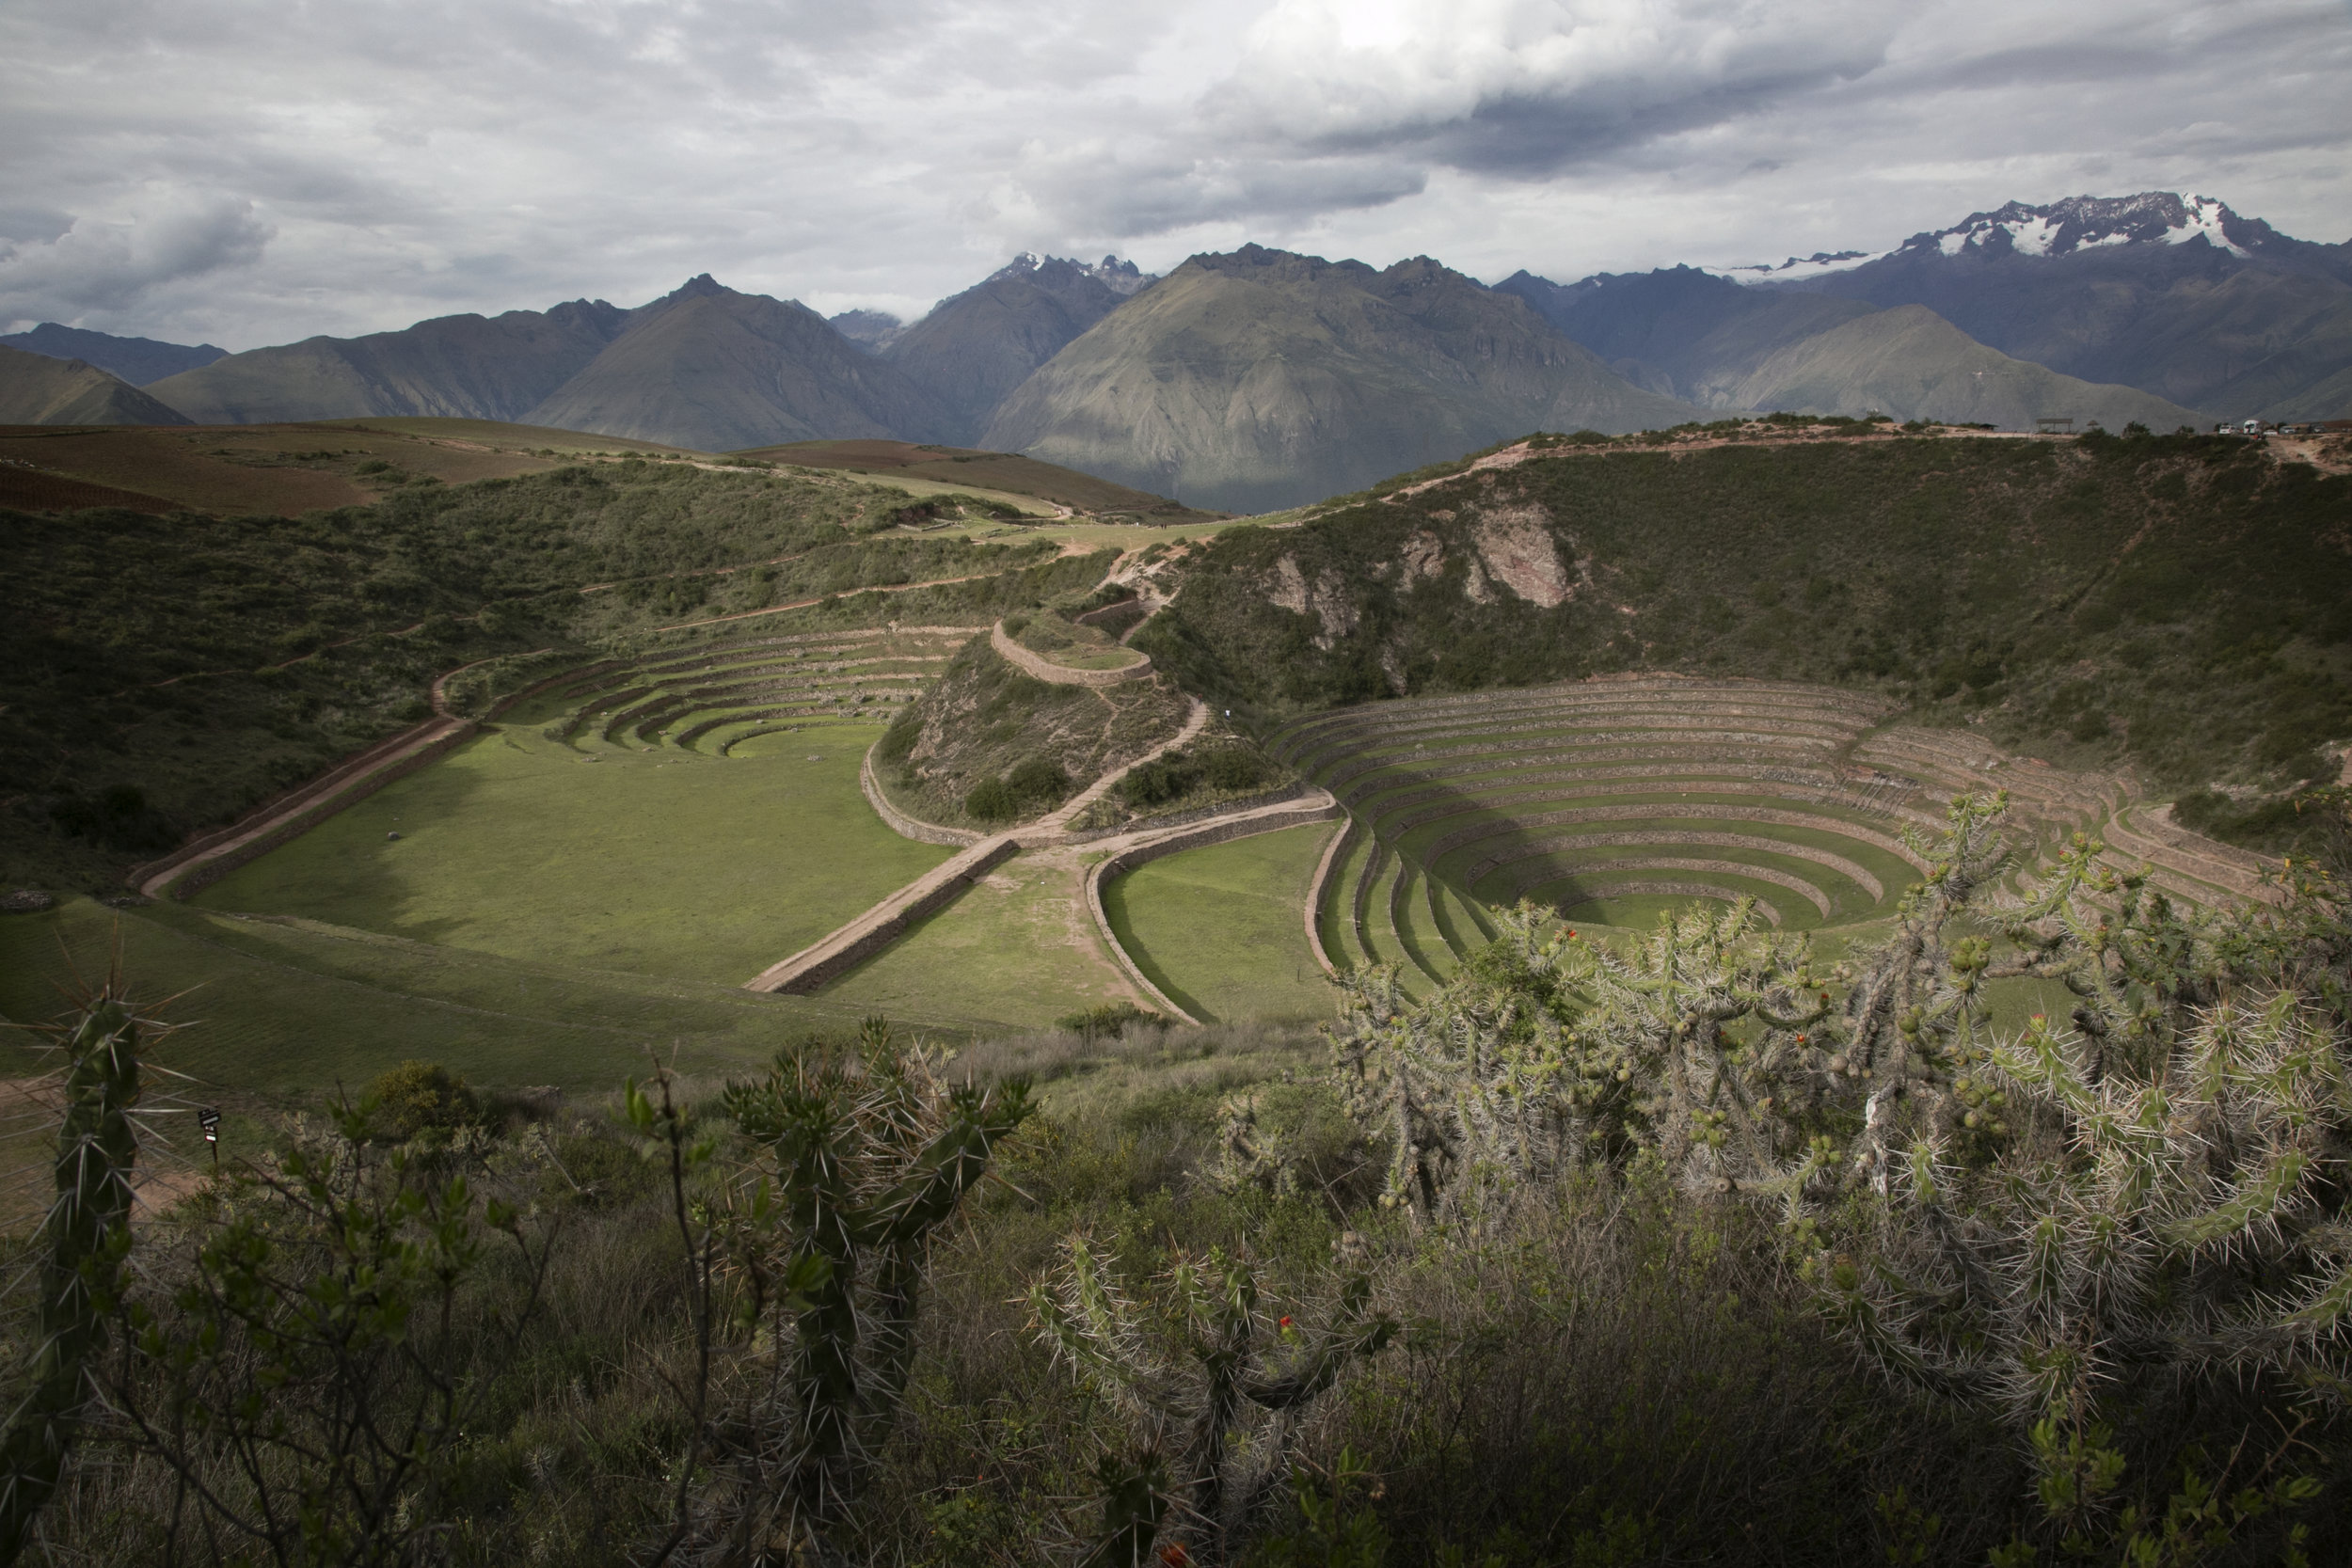 The circular terraces of Moray remain mysterious. The Inca may have sued the side for agricultural experiments, testing various crops at each level's microclimate.